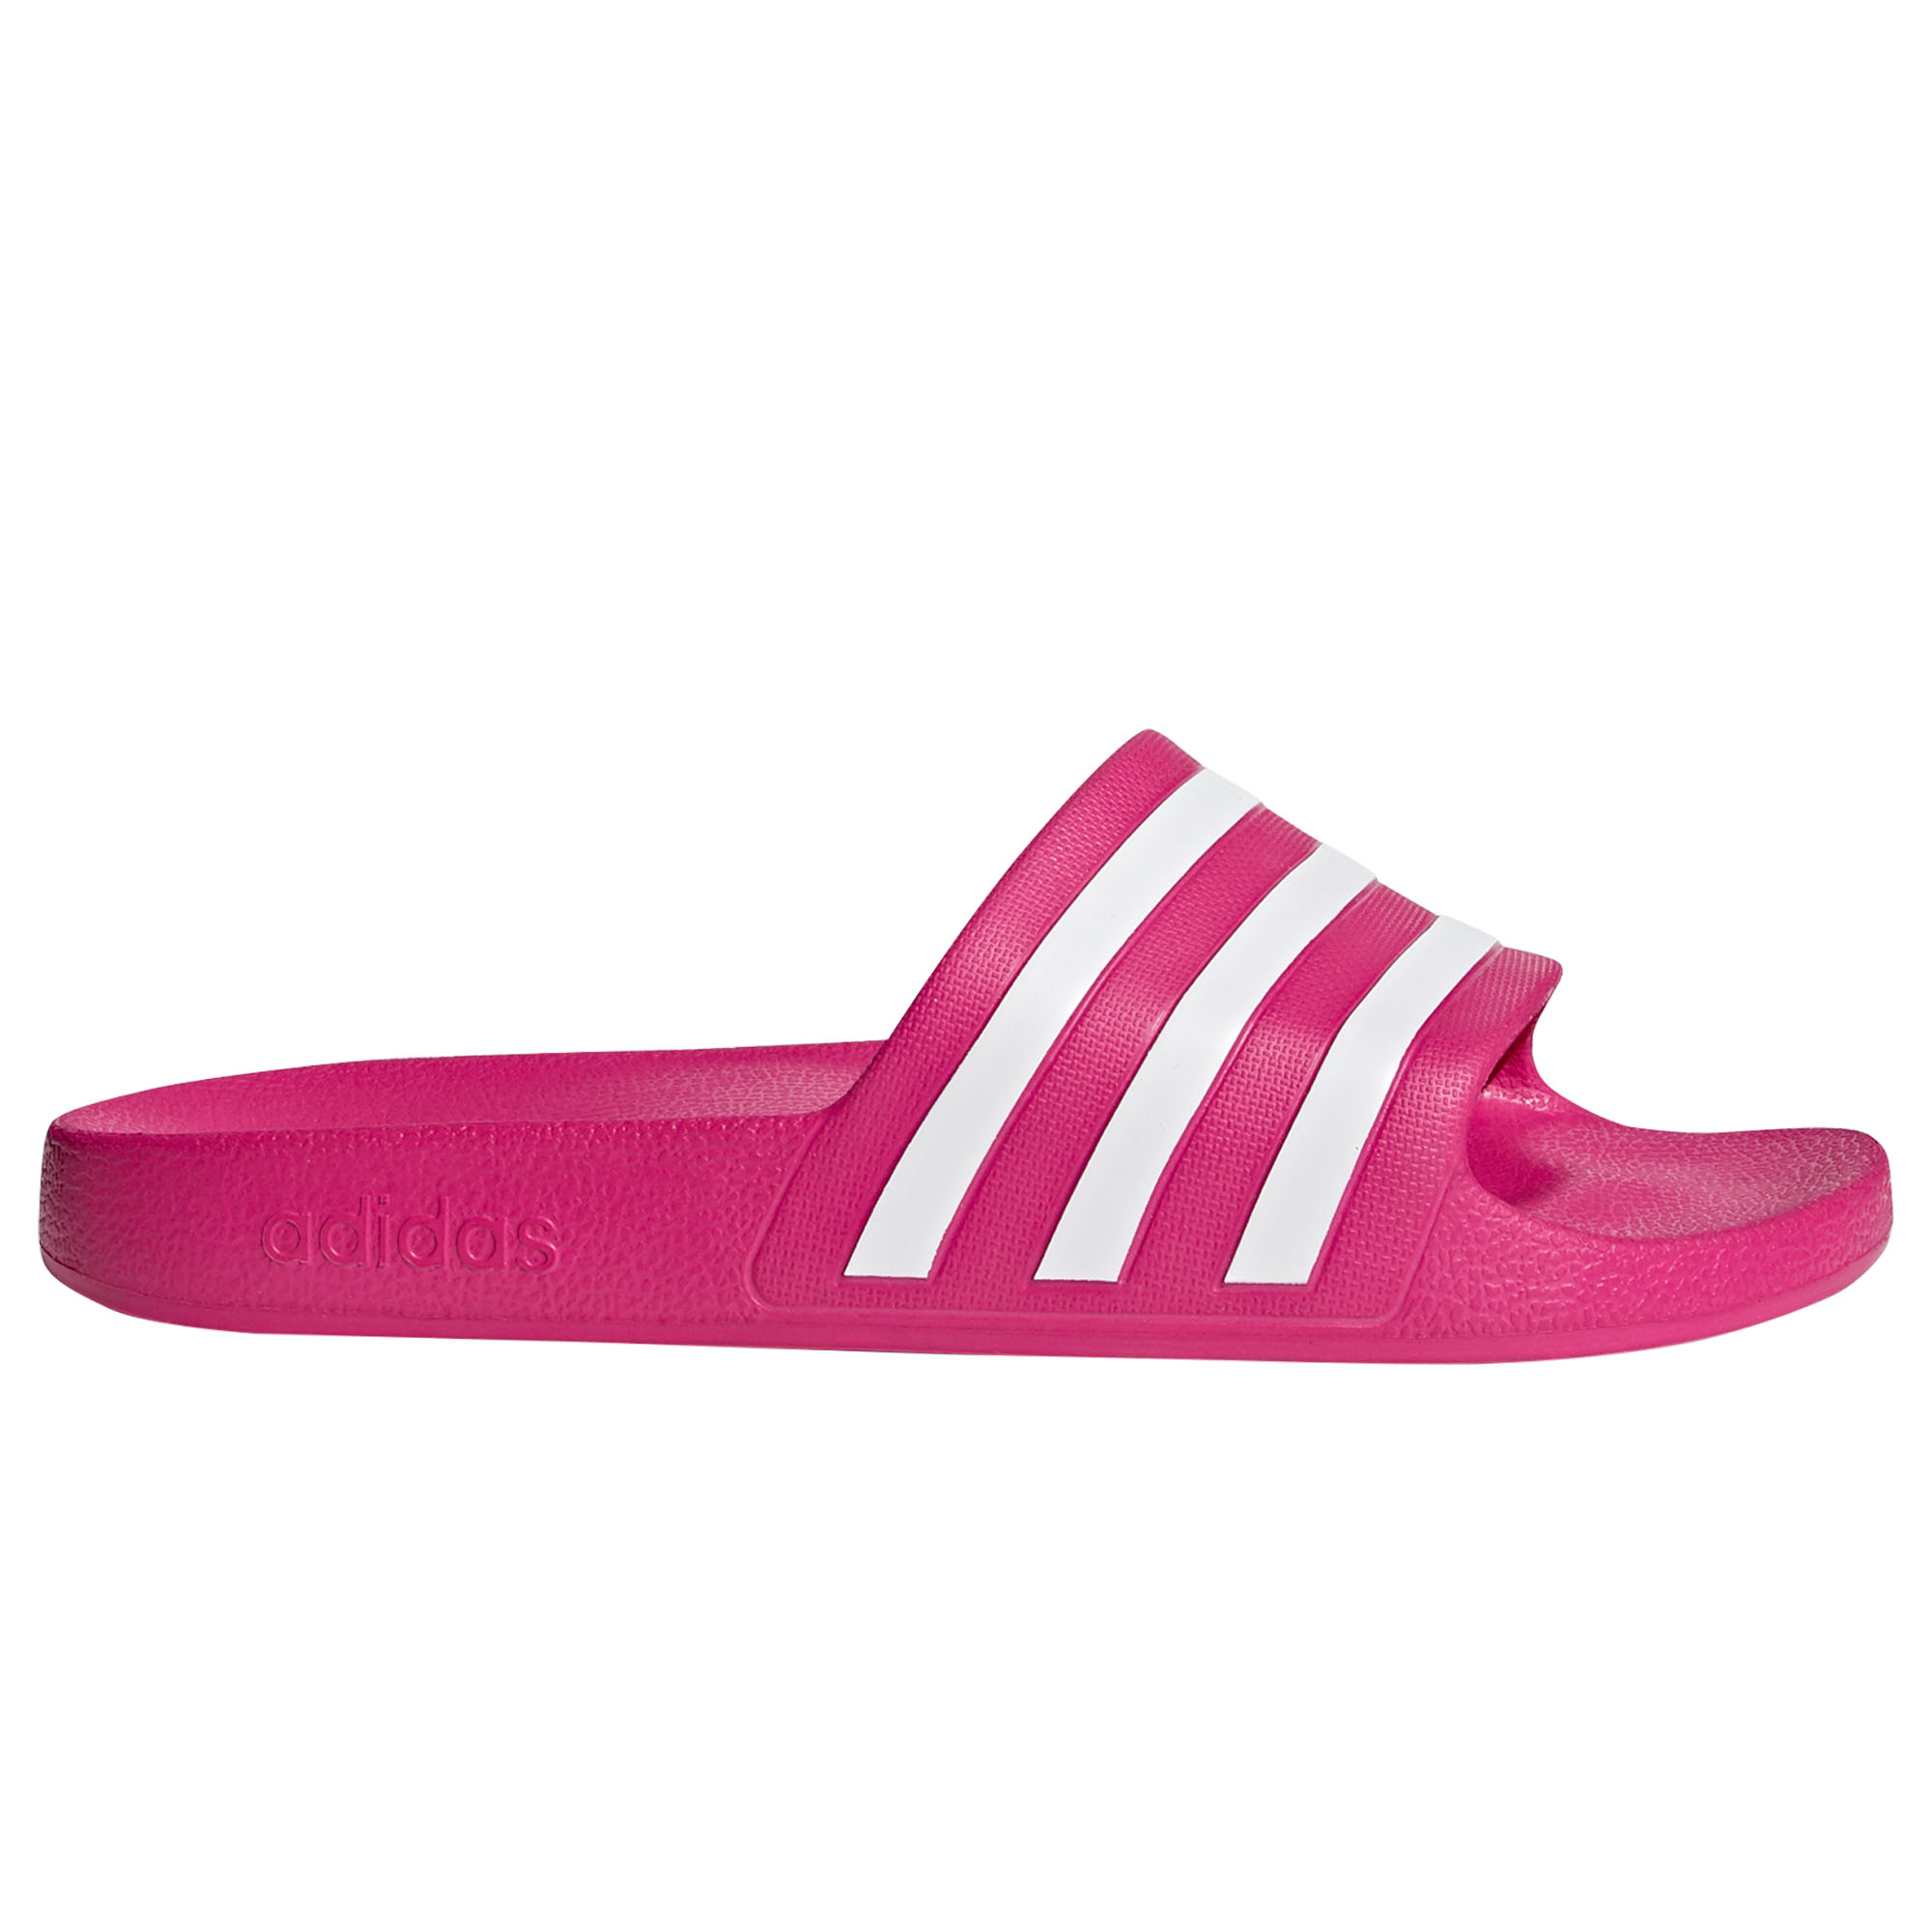 See more adidas Neo Flip Flops Mens Beach Holiday Pool